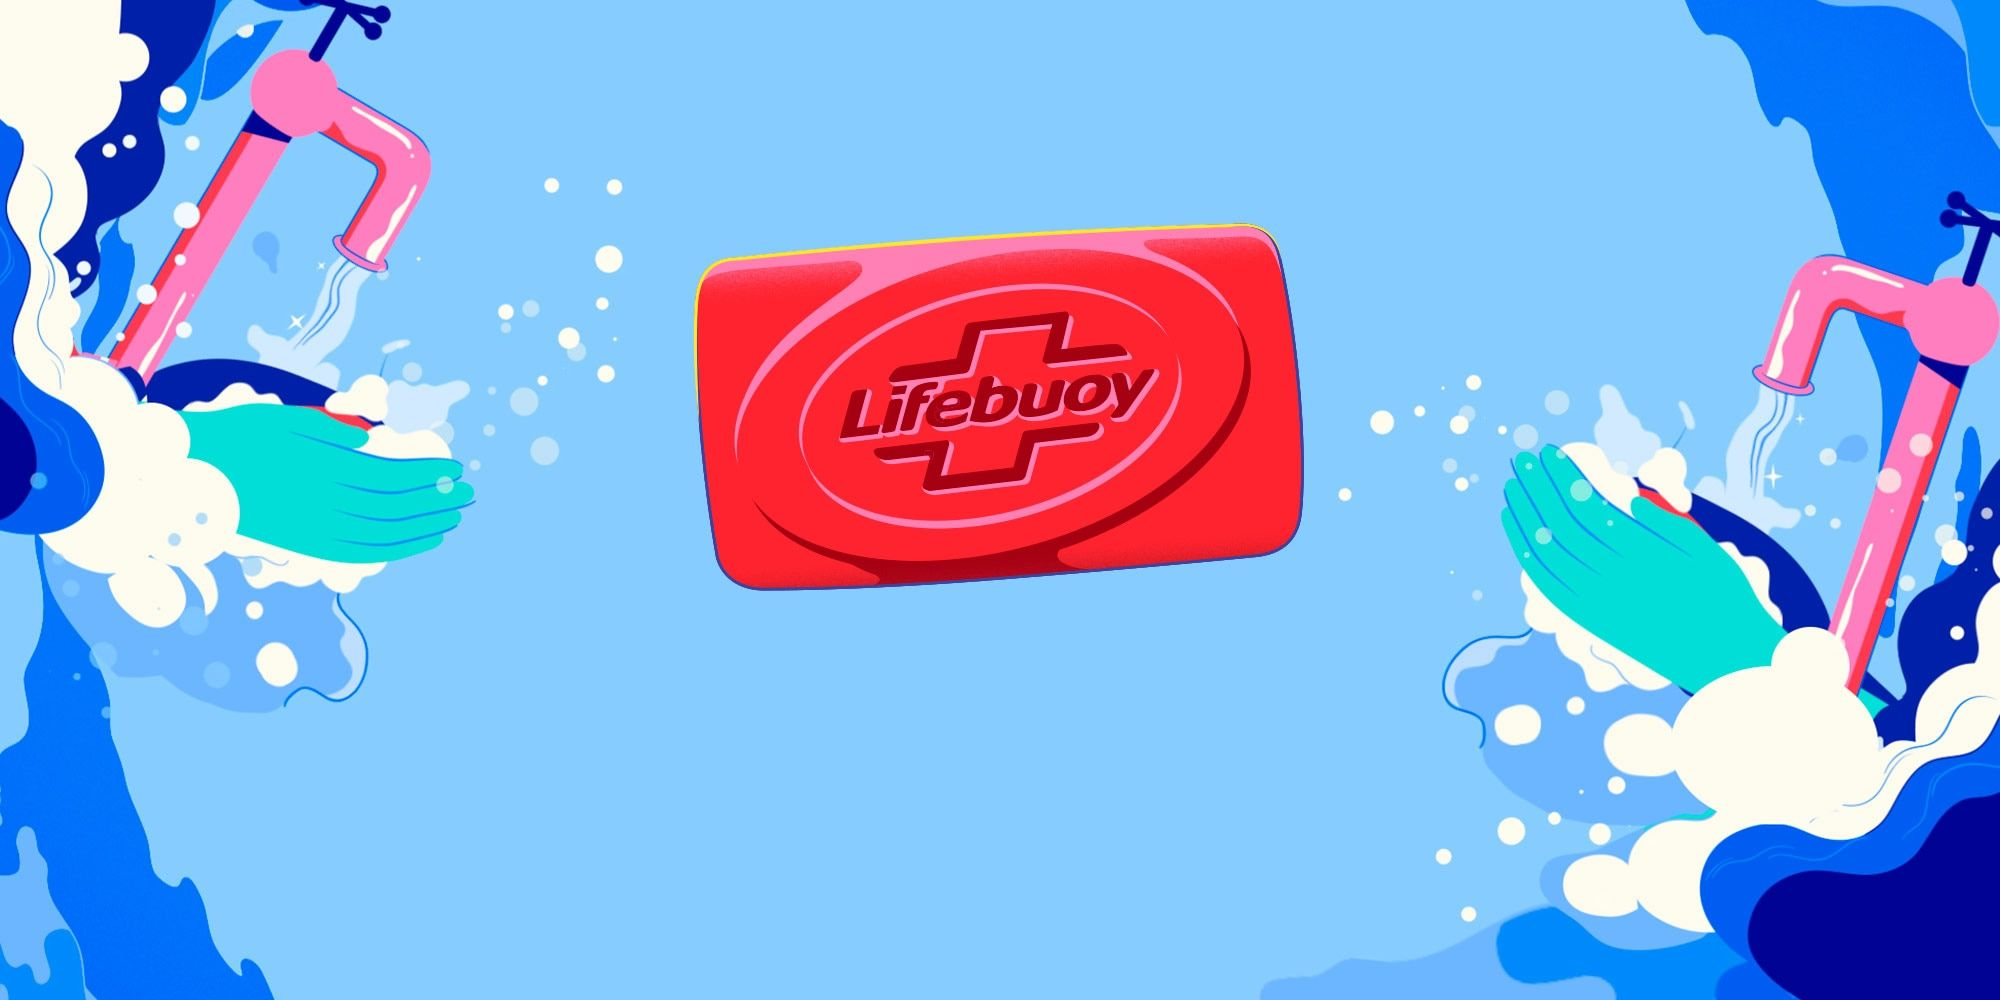 Lifebuoy background